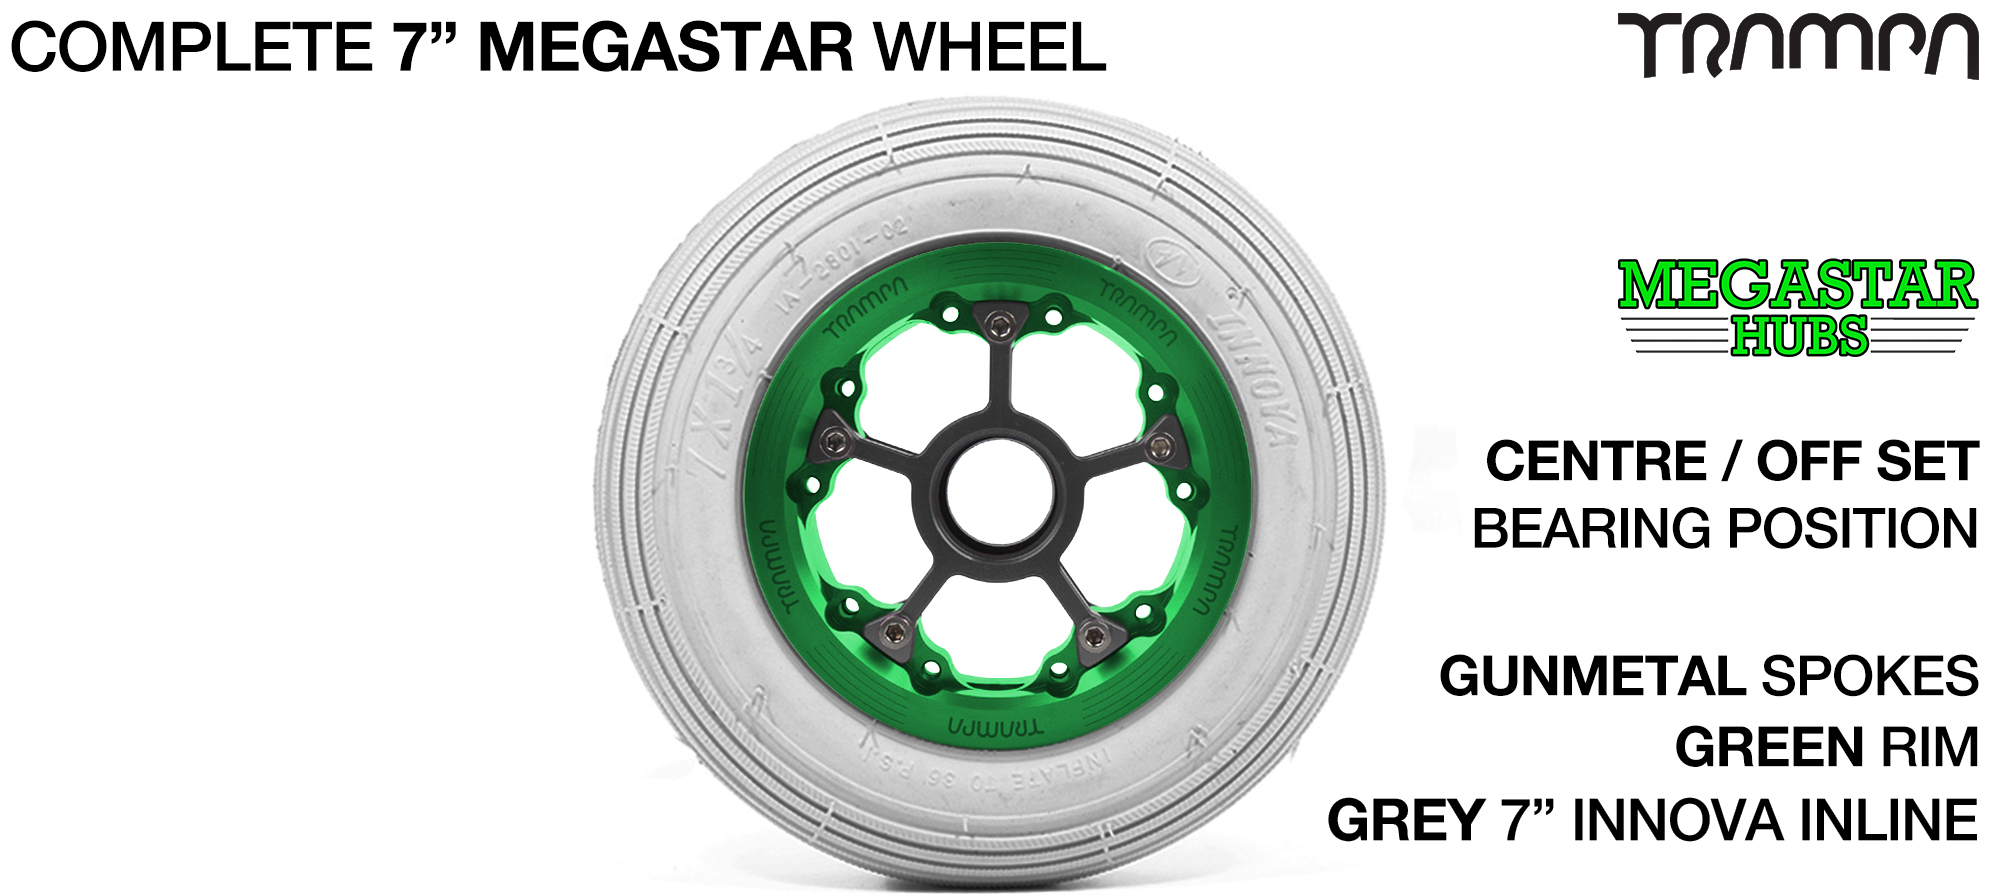 GREEN MEGASTAR Rims with GUNMETAL Spokes & 7 Inch Tyres